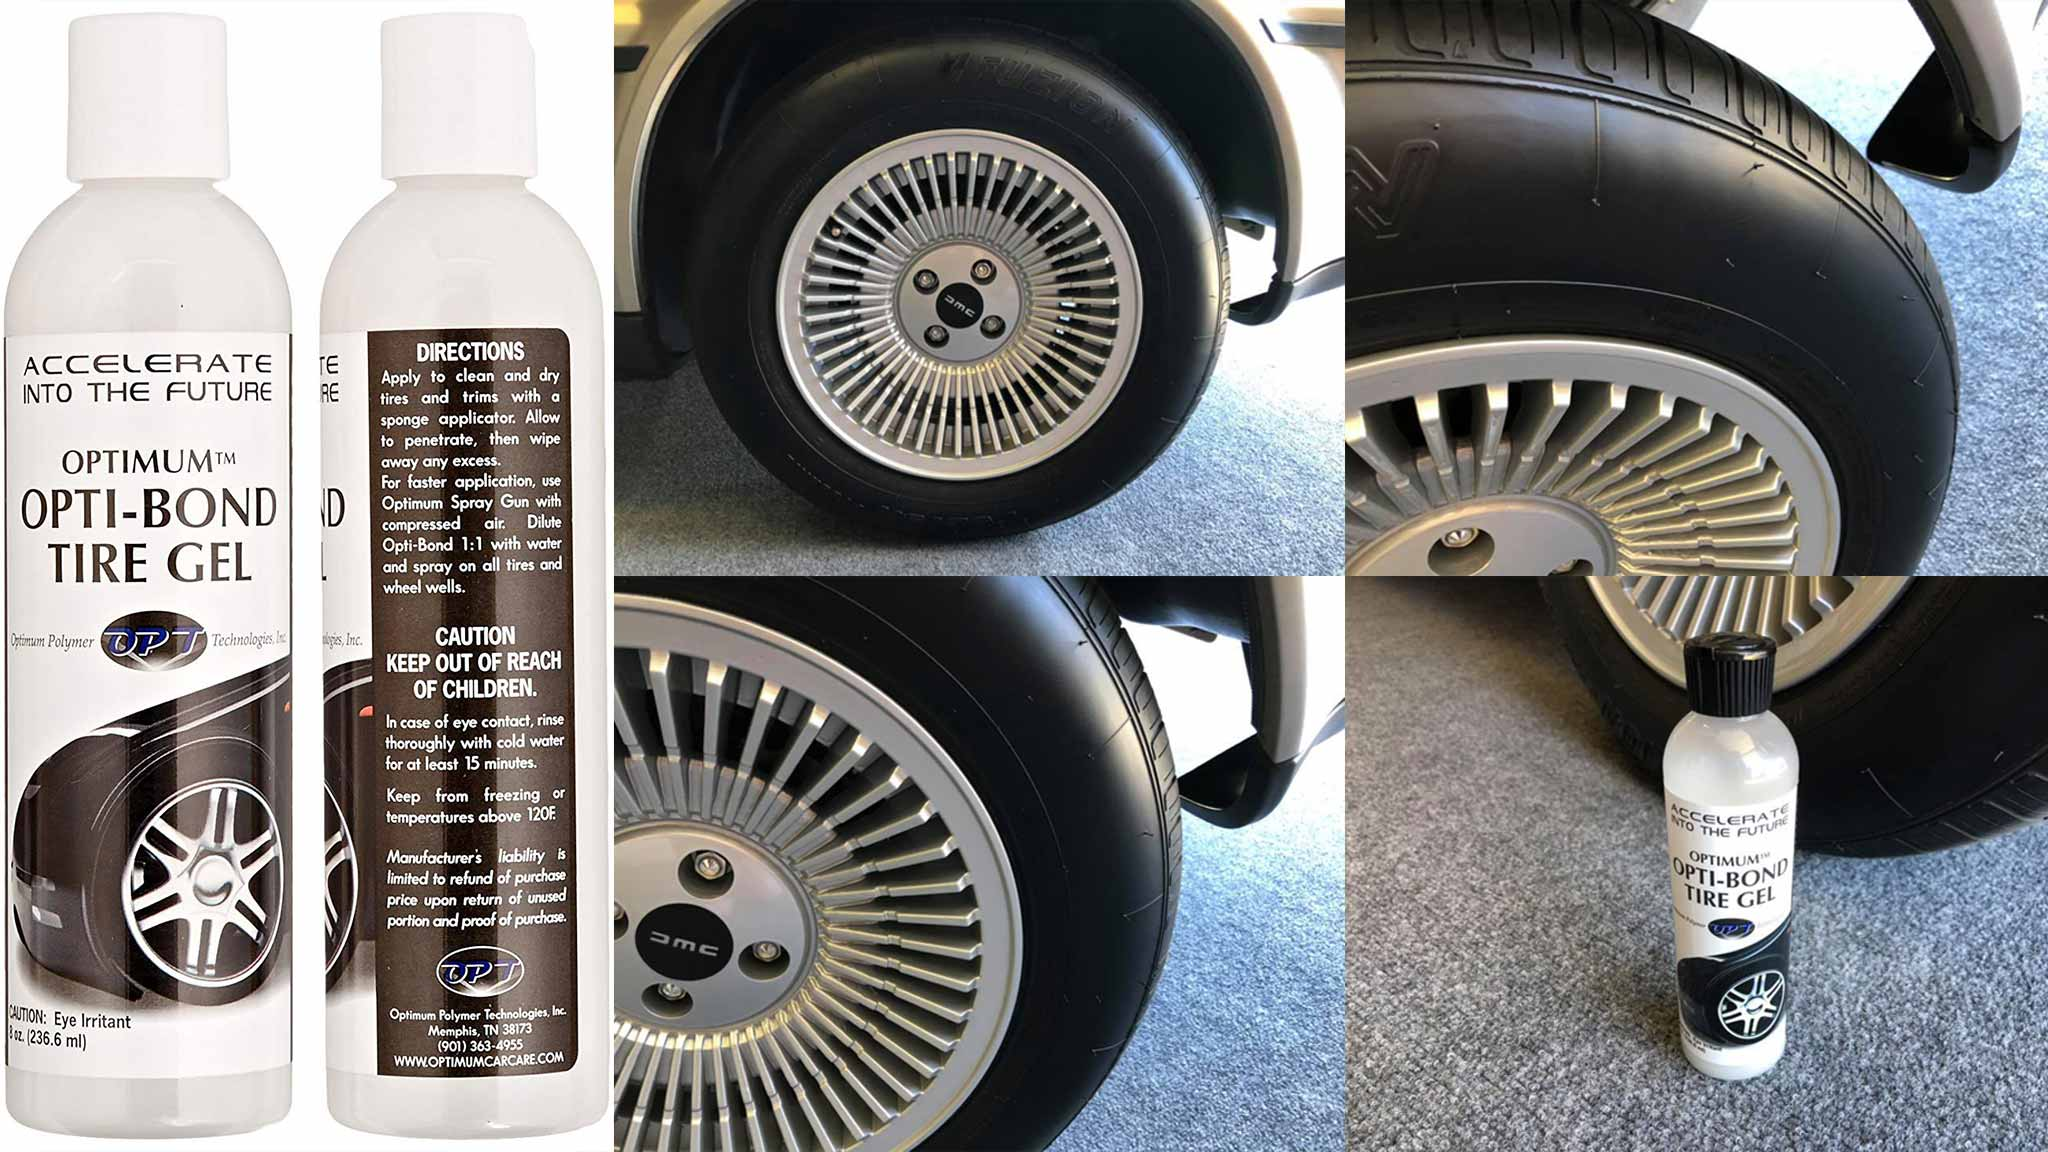 Optimum Opti-Bond Tire Gel | DeLoreanDirectory.com